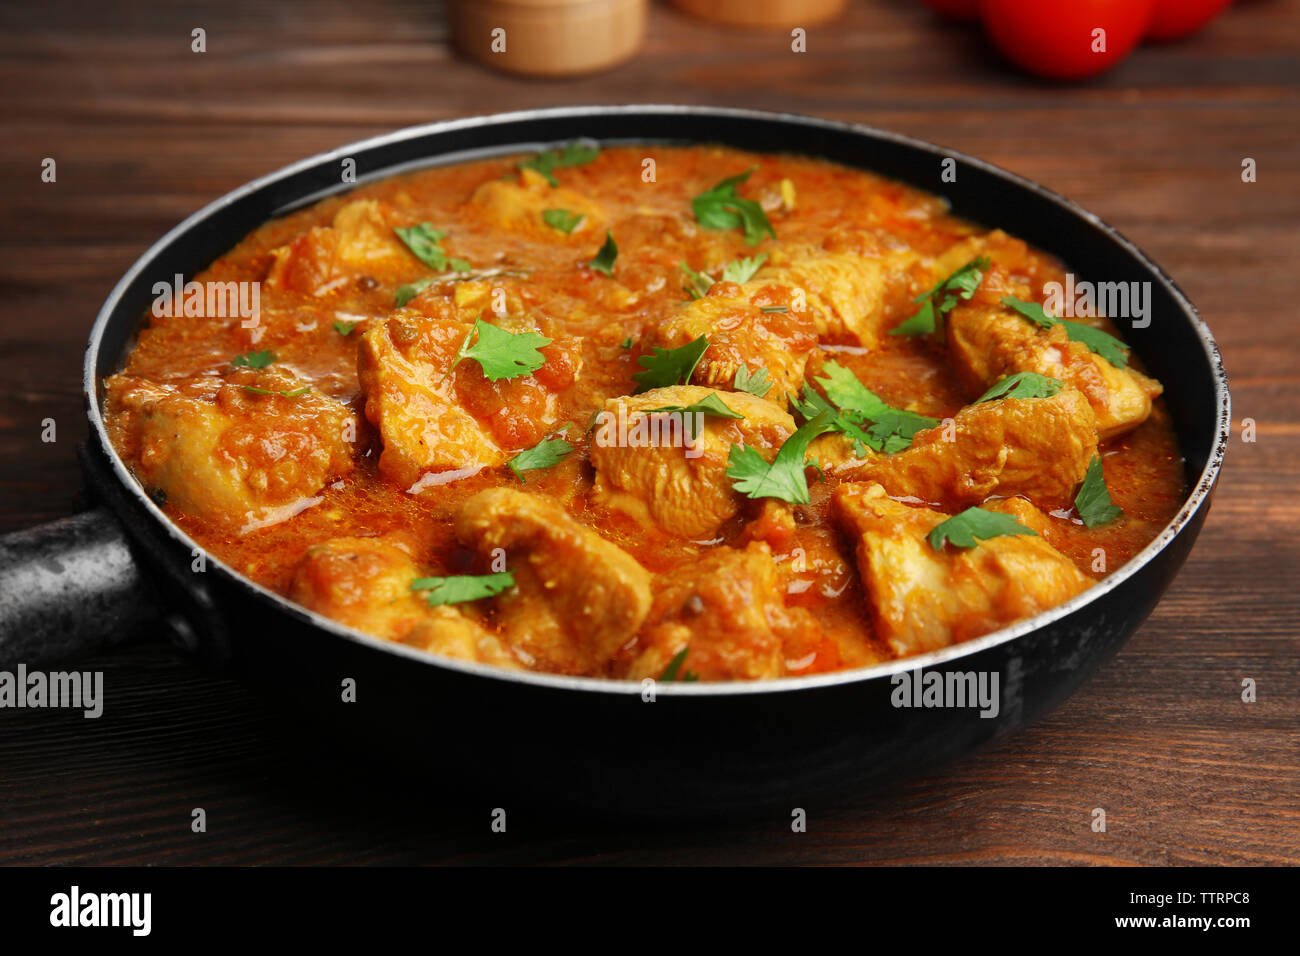 Tasty chicken curry in pan on wooden background - Stock Image